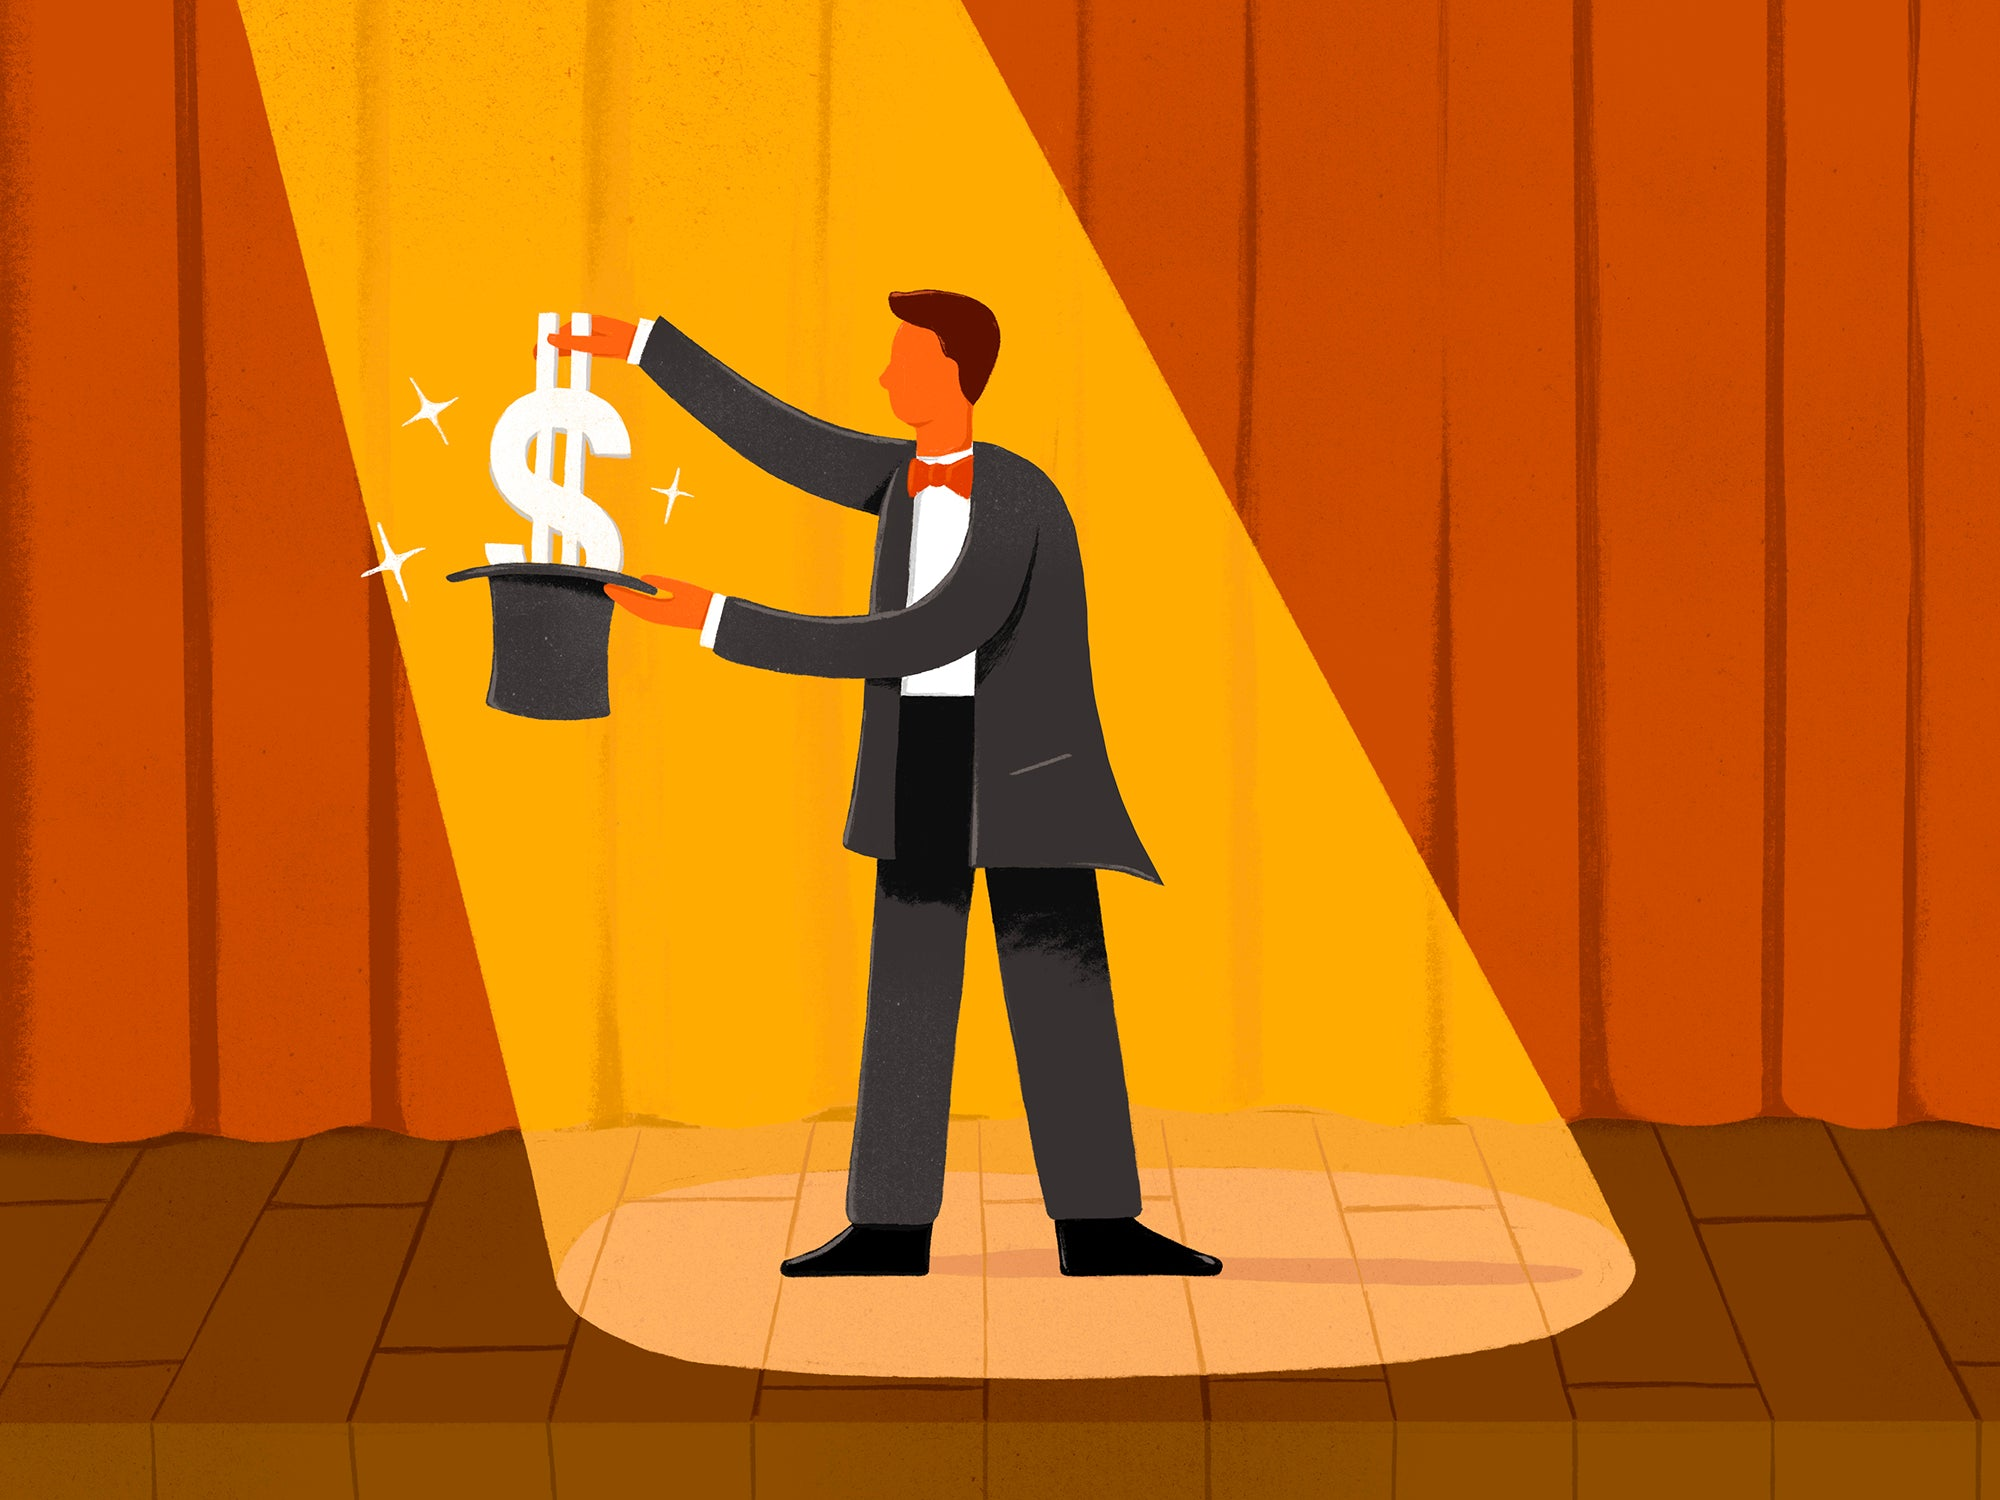 Illustration of a kid pulling a large dollar sign out of a hat on stage, representing a kid-run magician business